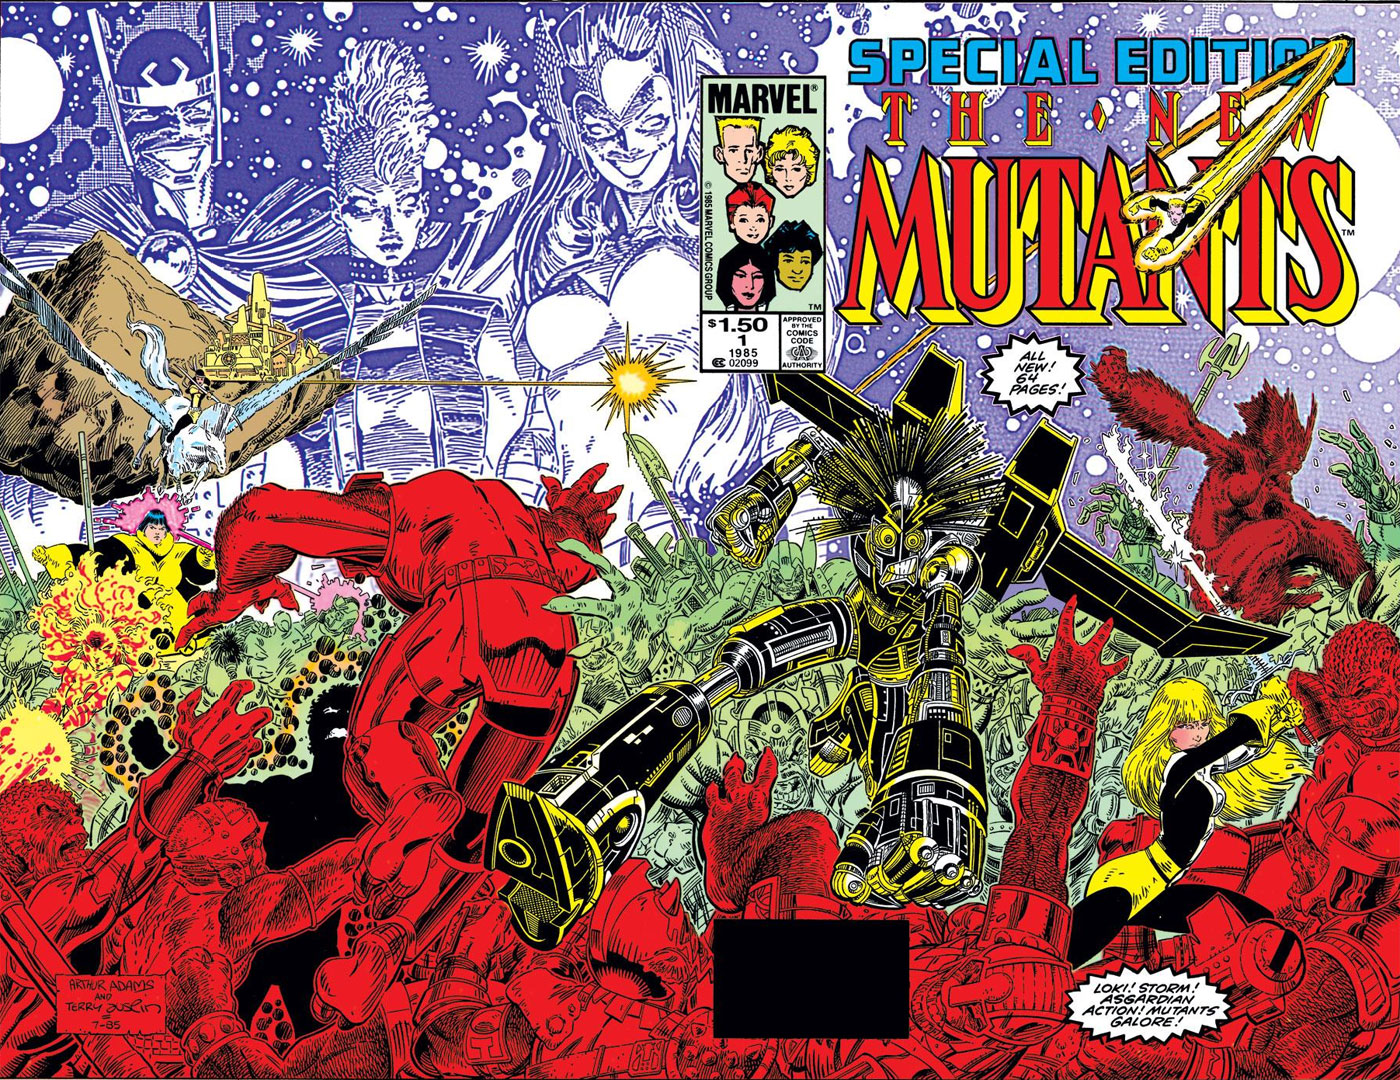 Arthur Adams on New Mutants Special #1